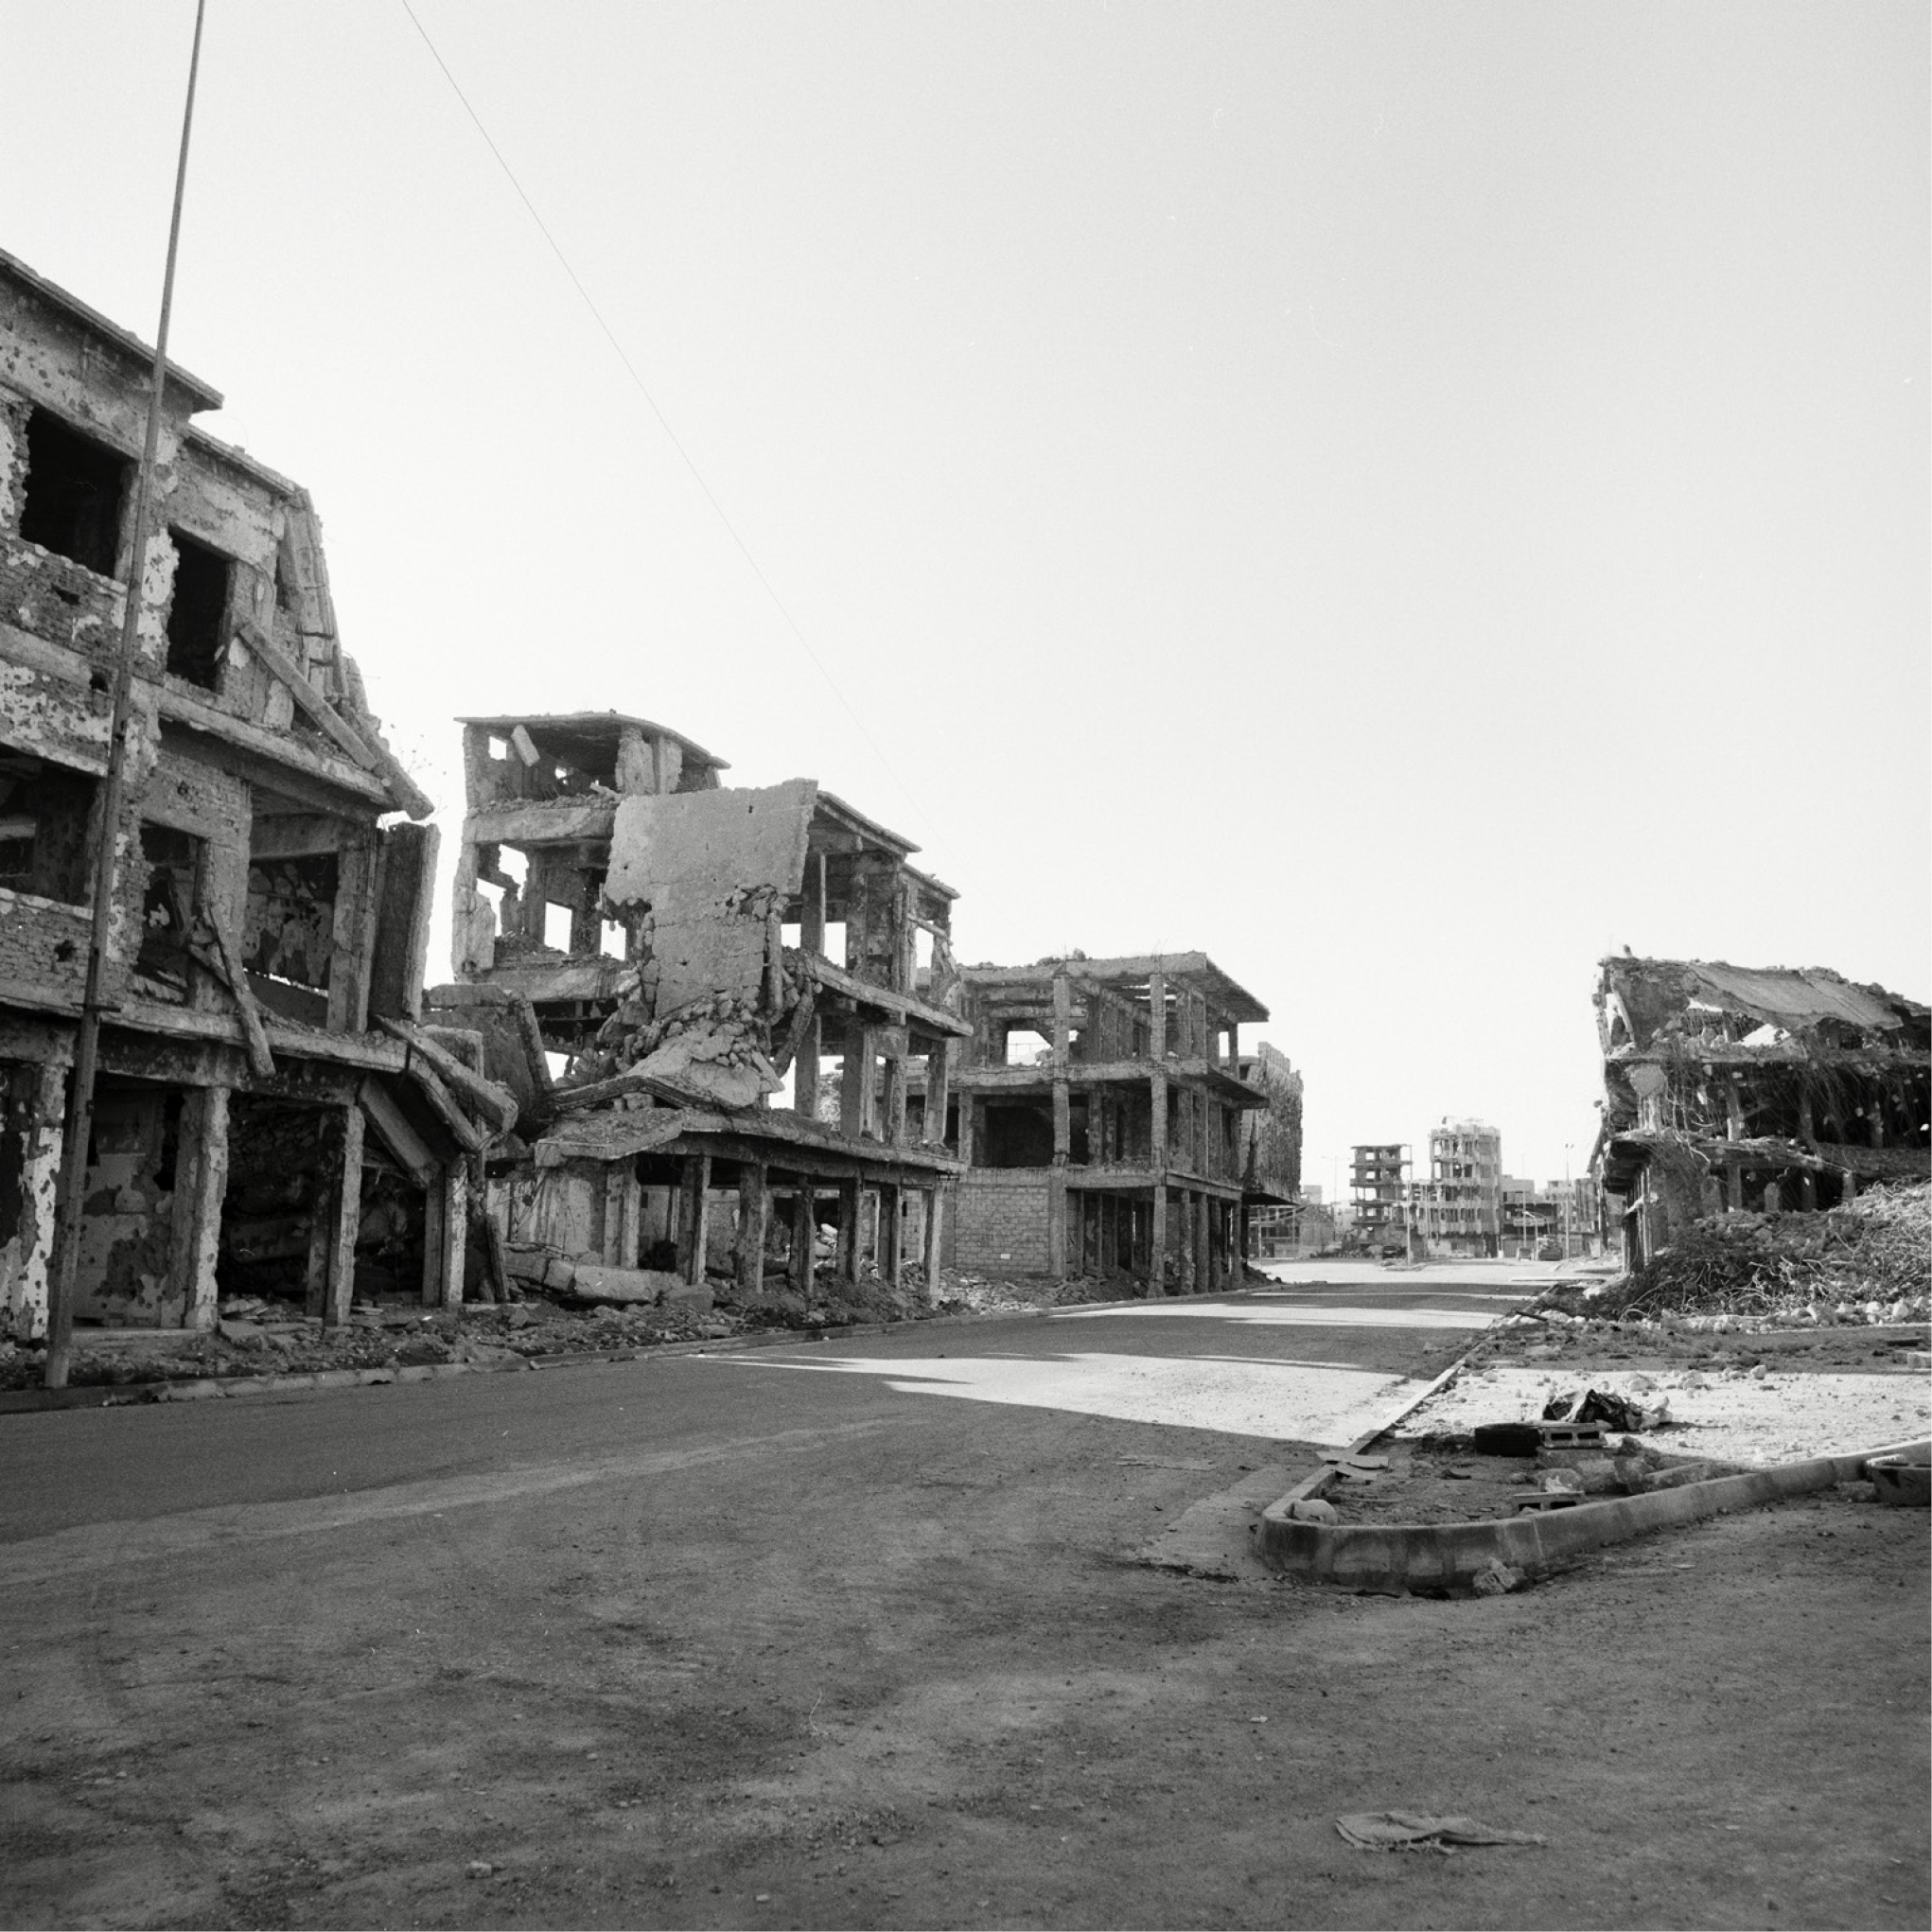 Black and white photograph of war ravaged street